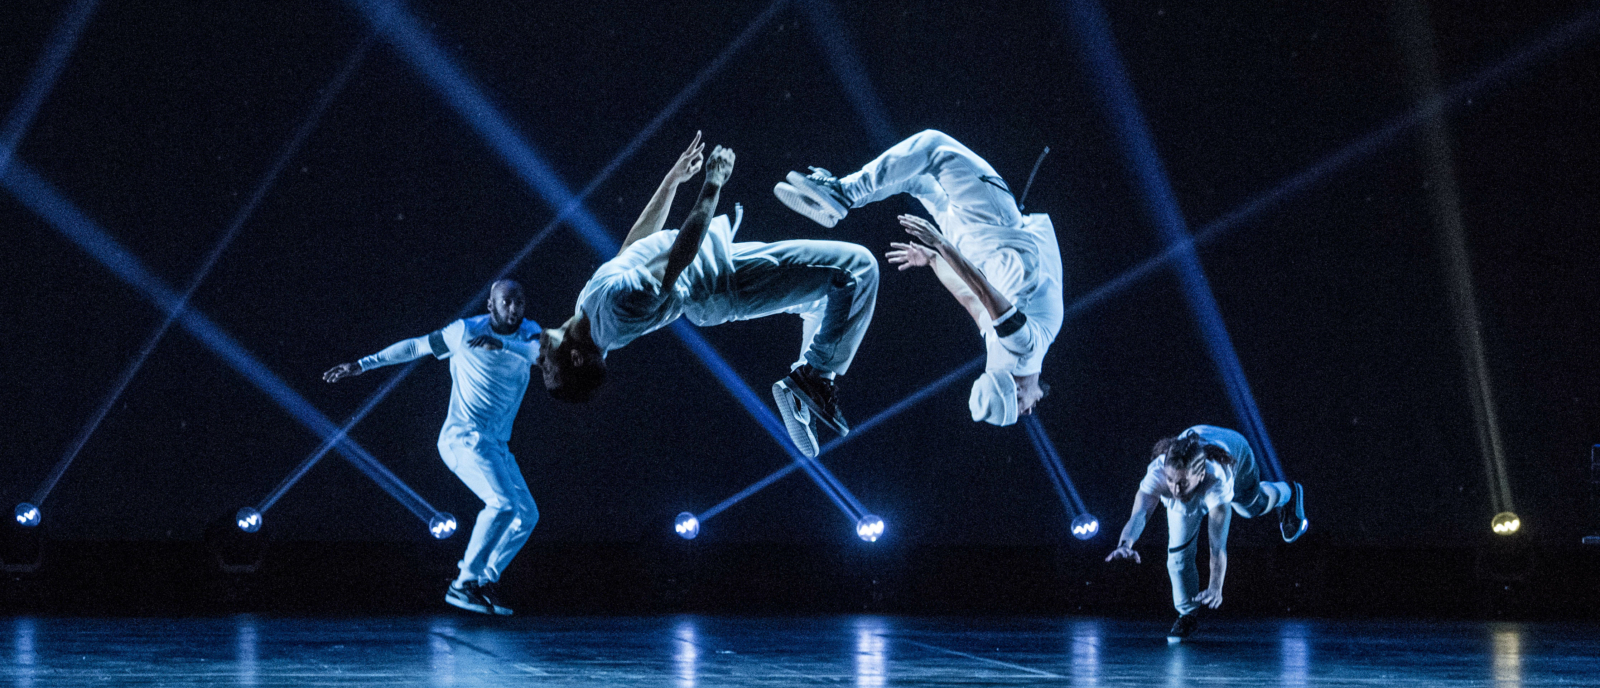 On a dark stage with blue lights, two dancers are doing backflips in the foreground while two more dancers watch on from the background